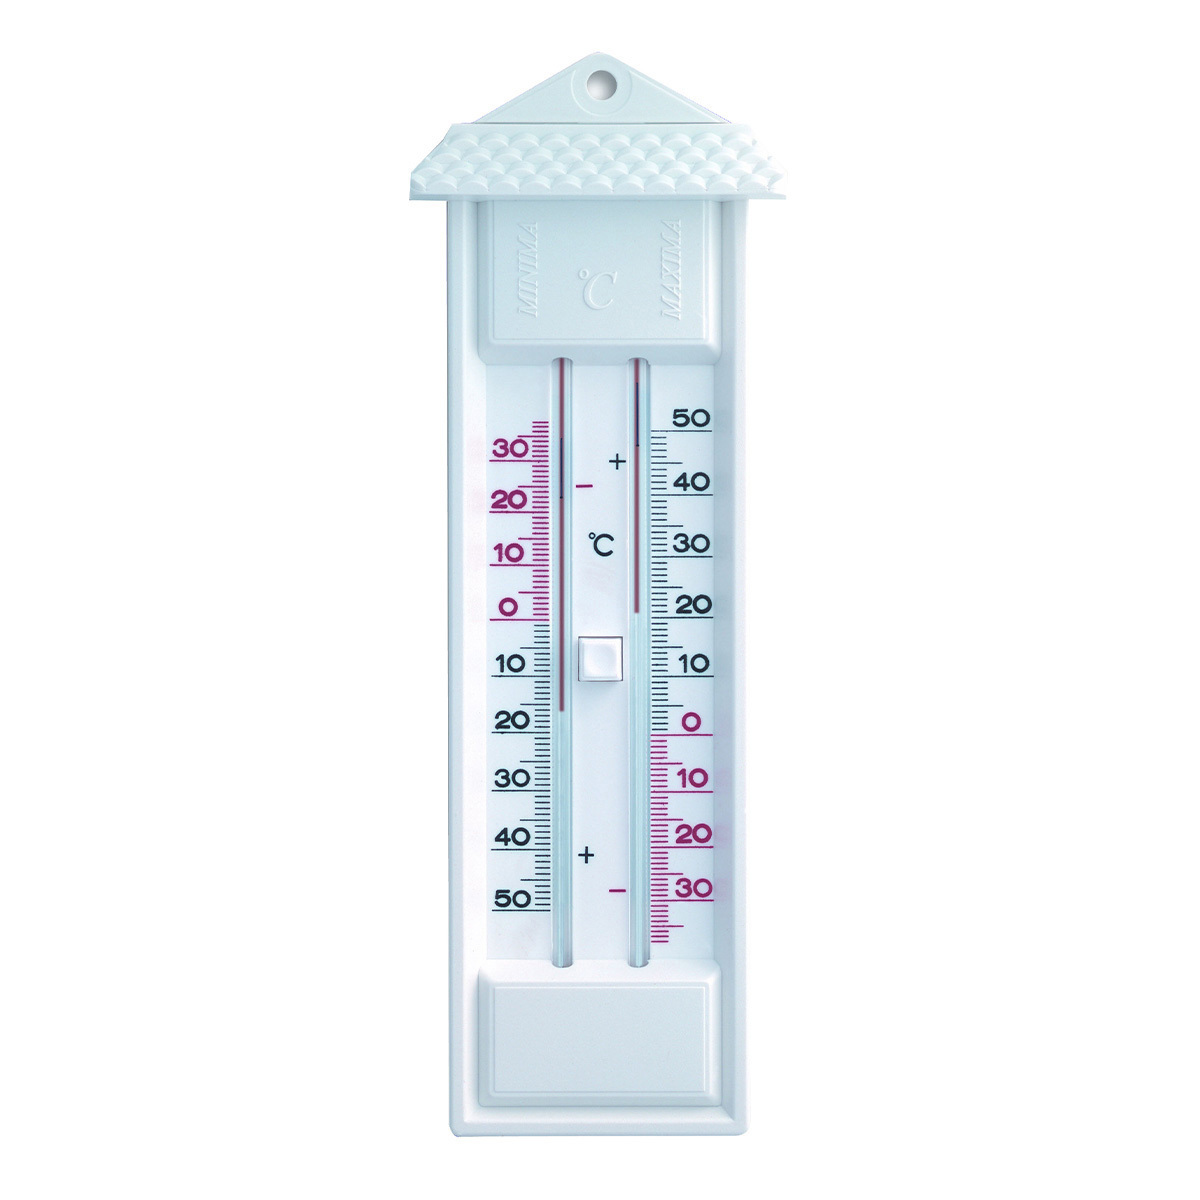 10-3014-02-analoges-minima-maxima-thermometer-1200x1200px.jpg